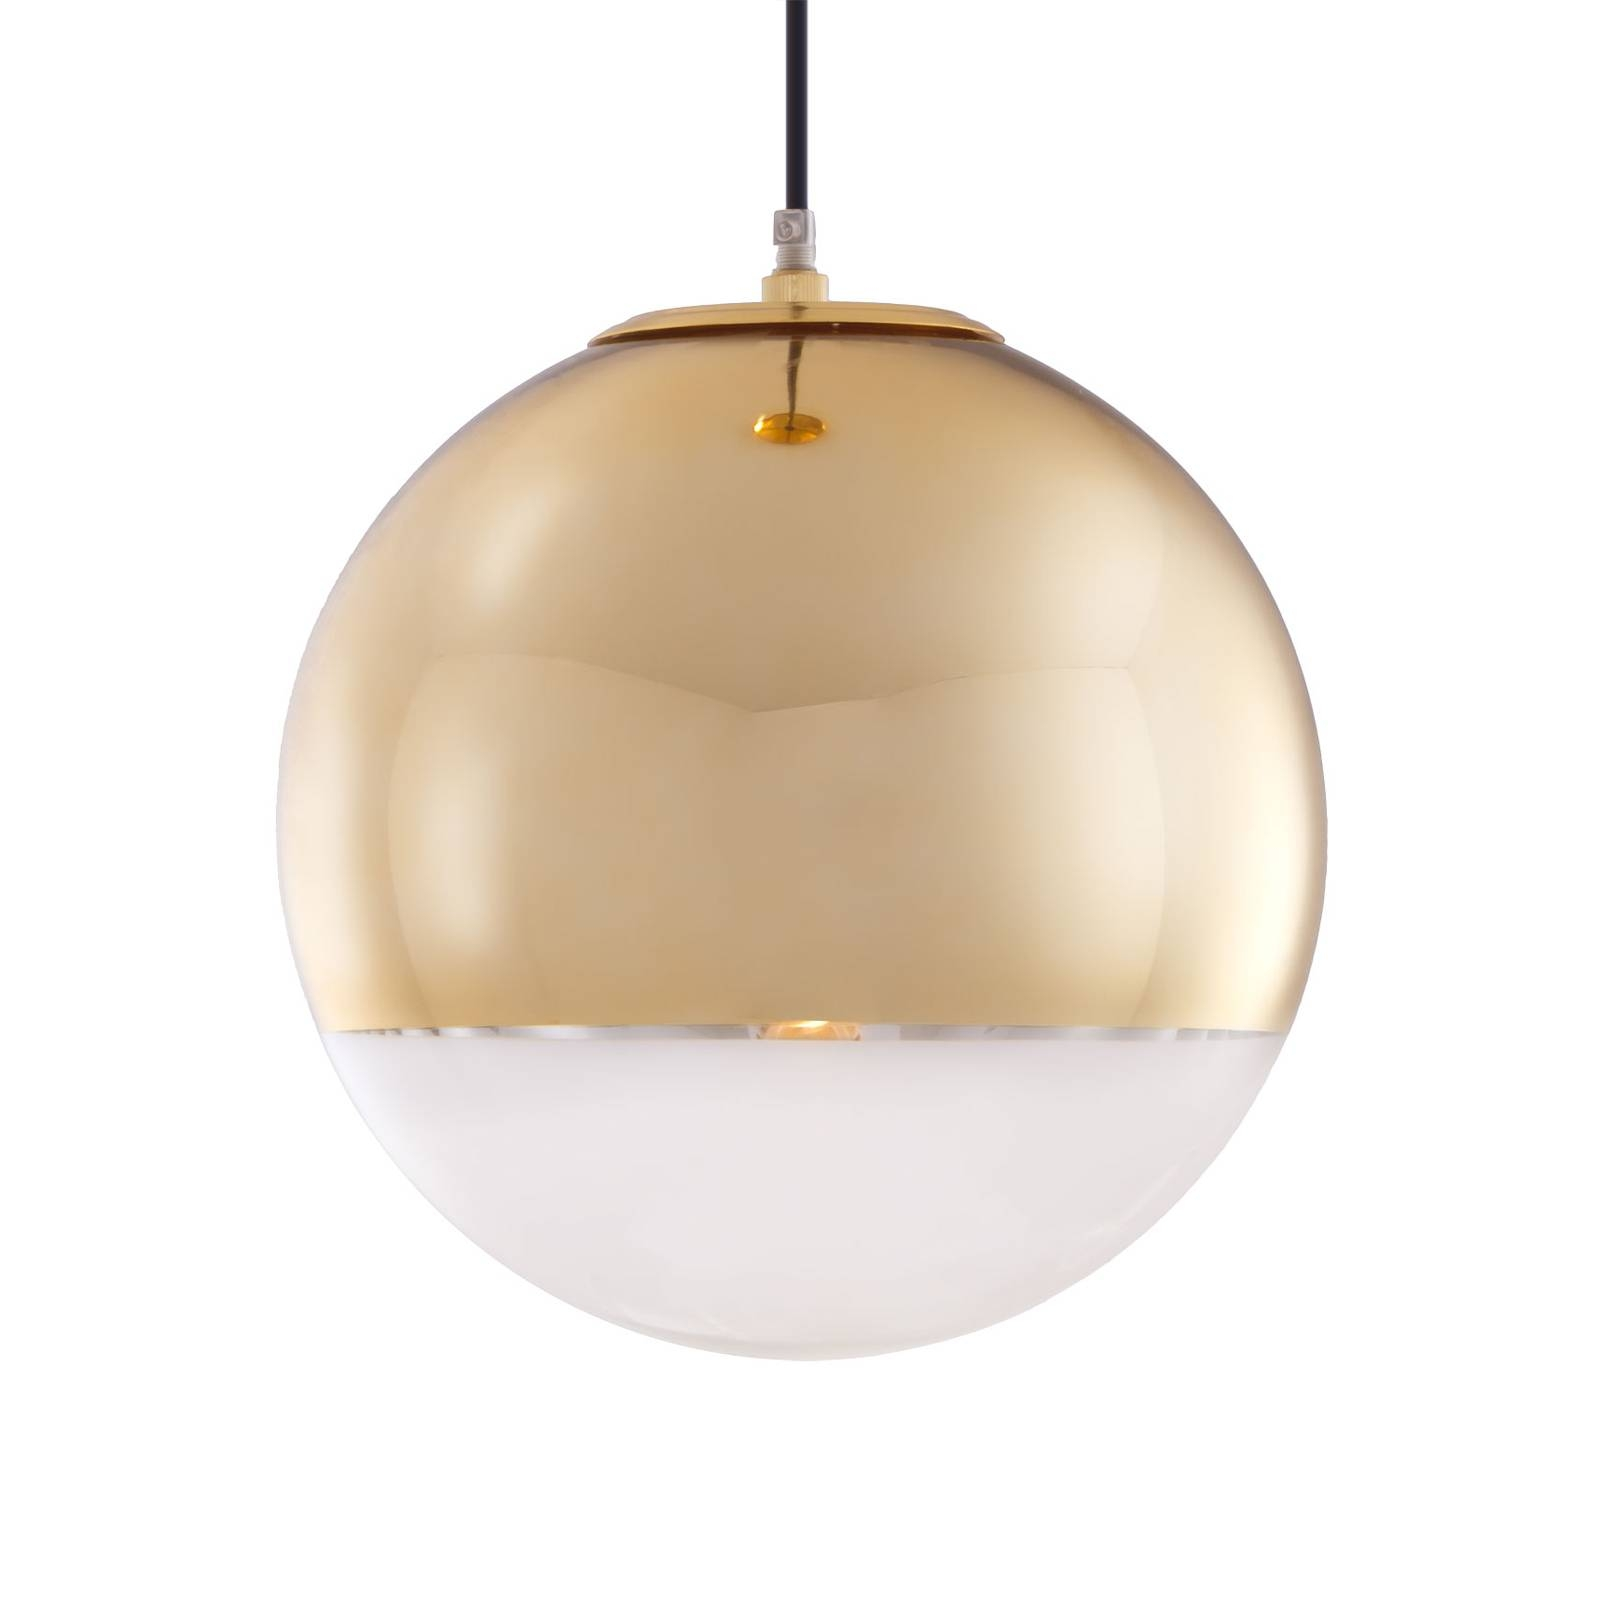 Classy Gold Pendant Light Epic Decorating Pendant Ideas With Gold throughout Epic Lamps Pendant Lights (Image 2 of 15)